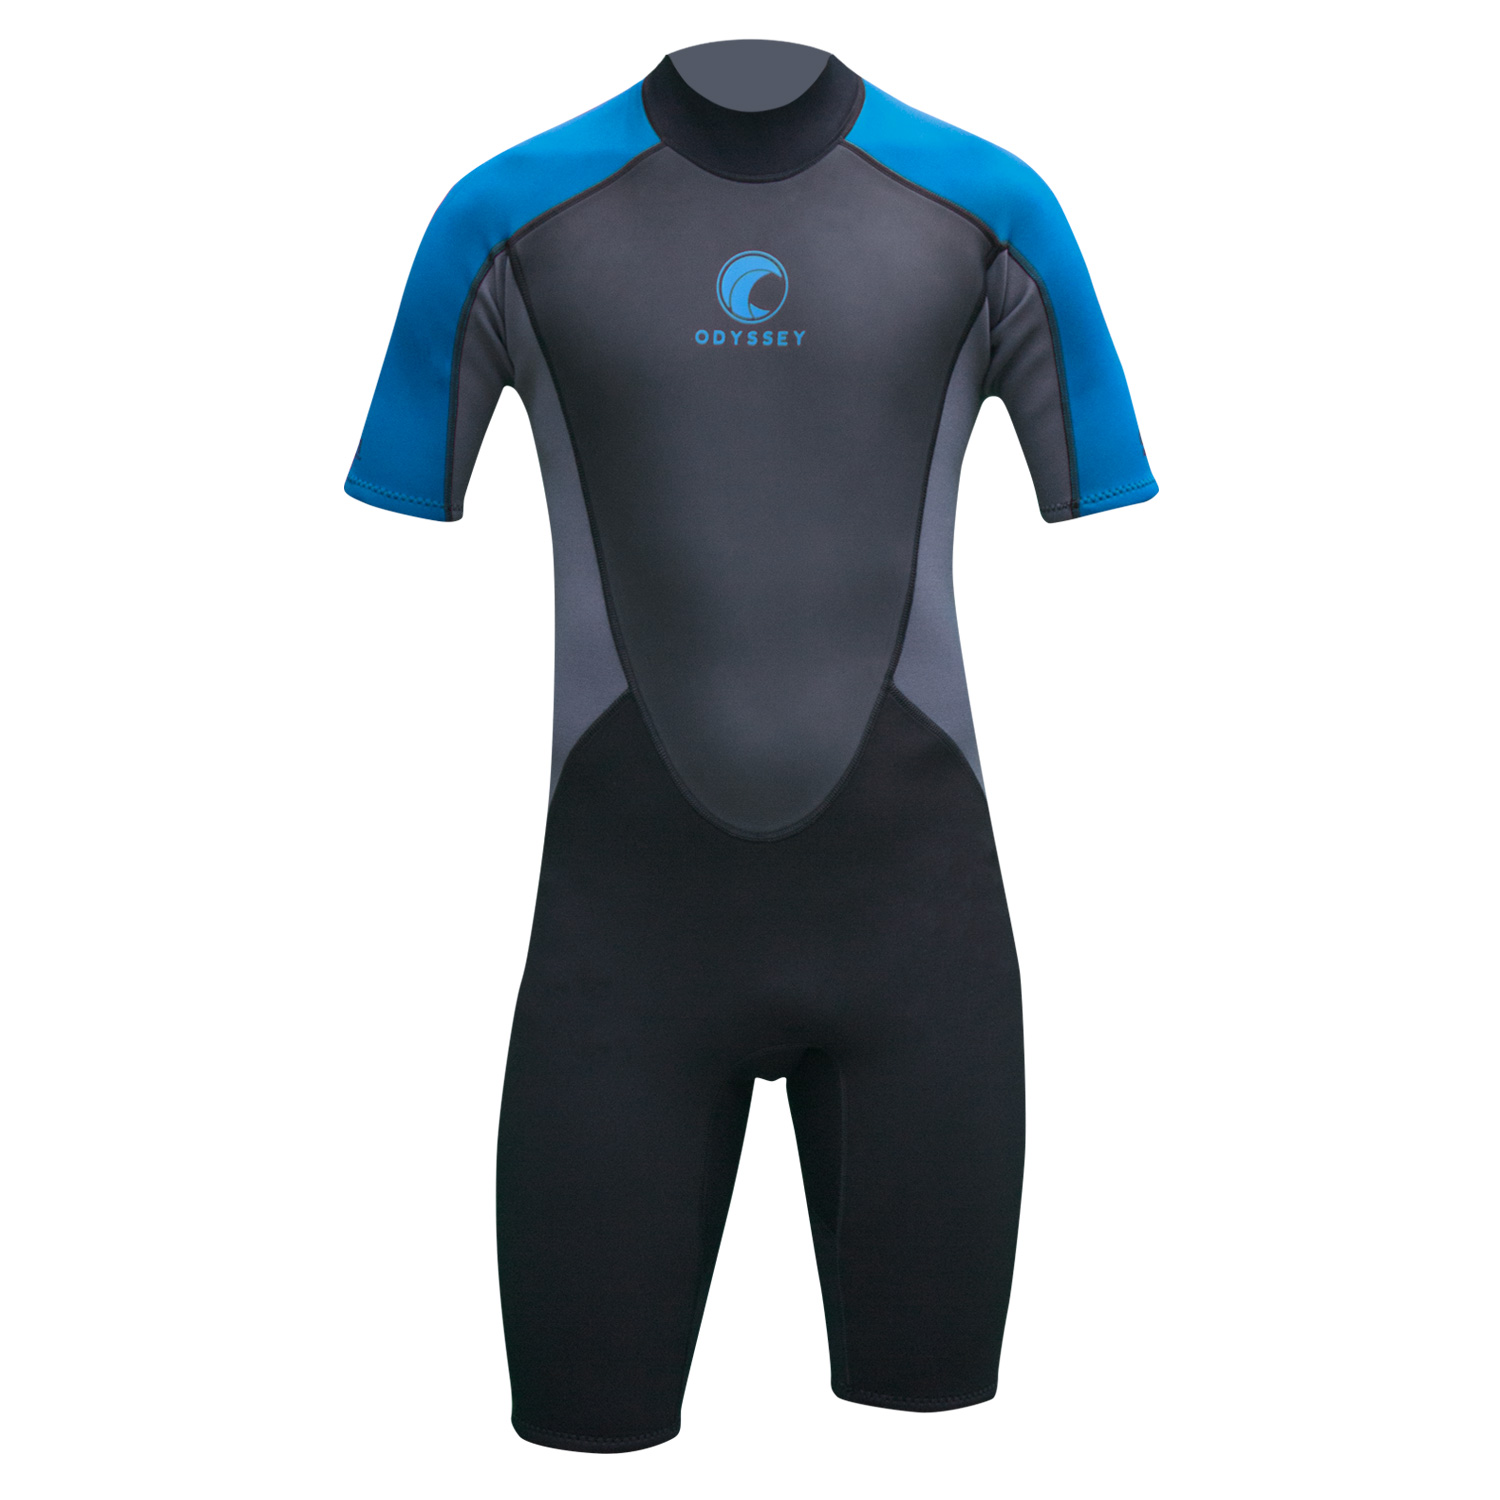 Odyssey-Core-3-2mm-Mens-Shorty-Wetsuit-Surf-Swim-Kayak-Shortie-Wet-Suit-S-XXL thumbnail 7